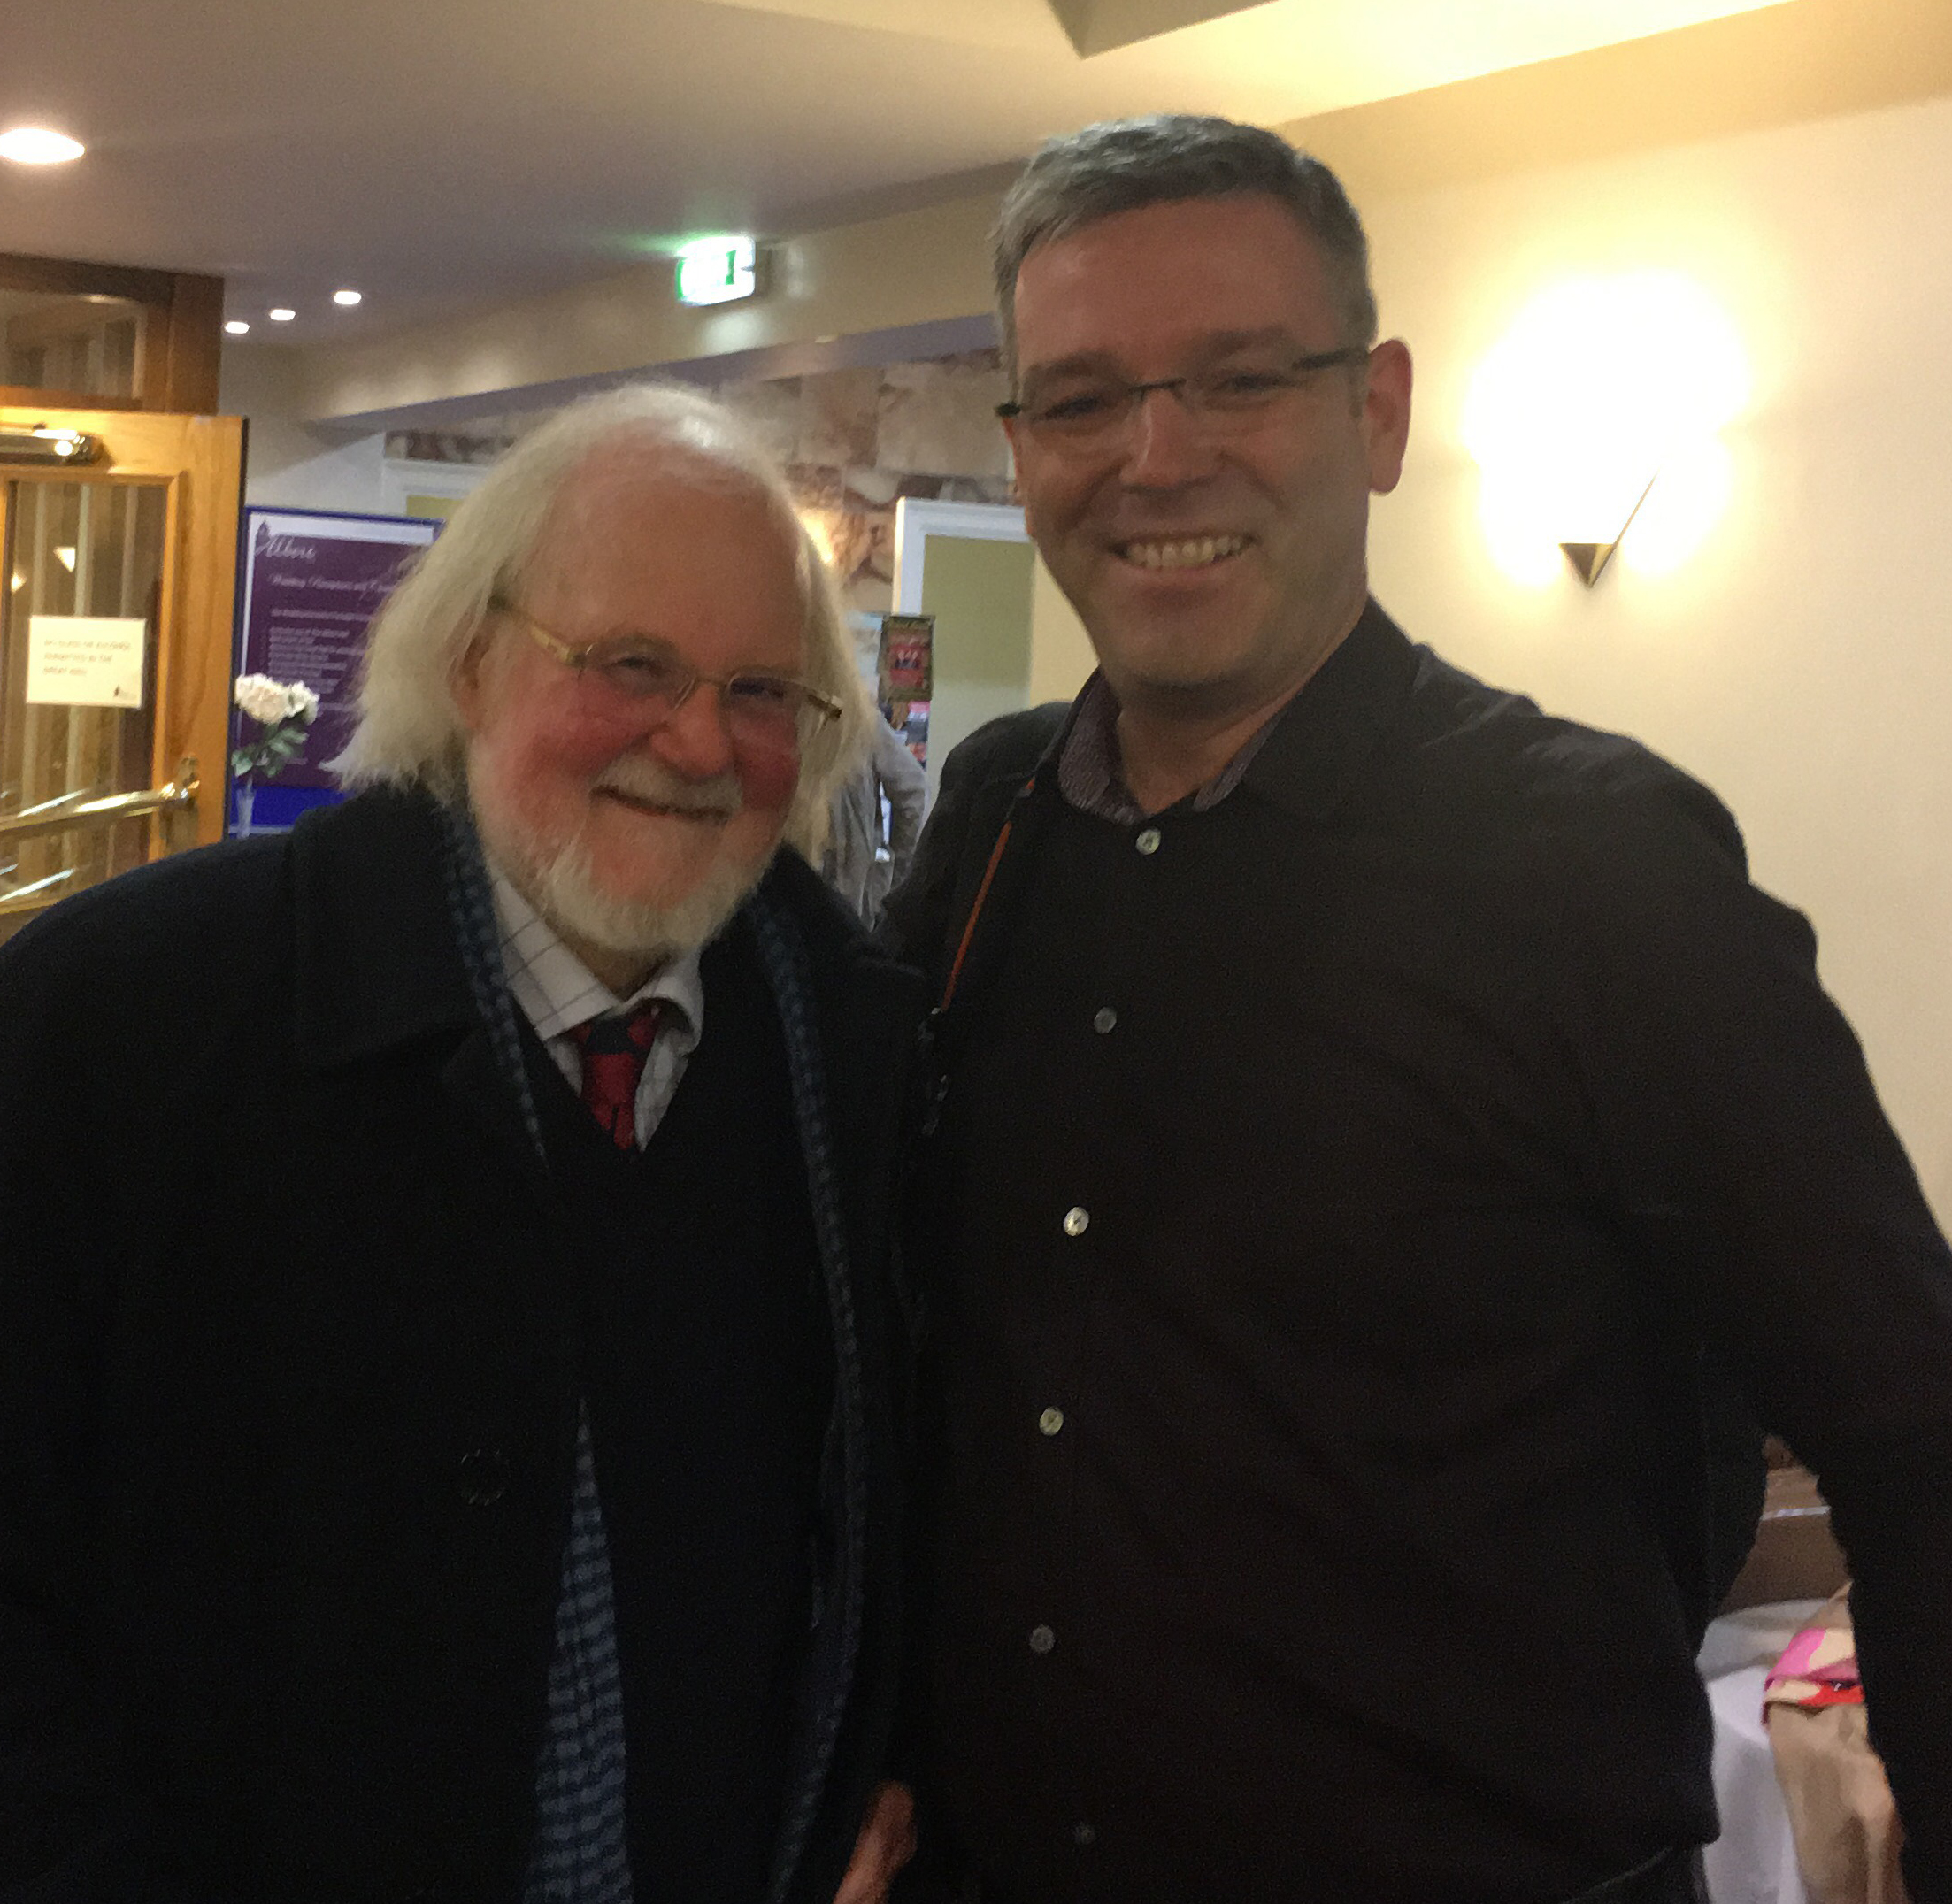 Post Brahms with Professor Robert Pascall